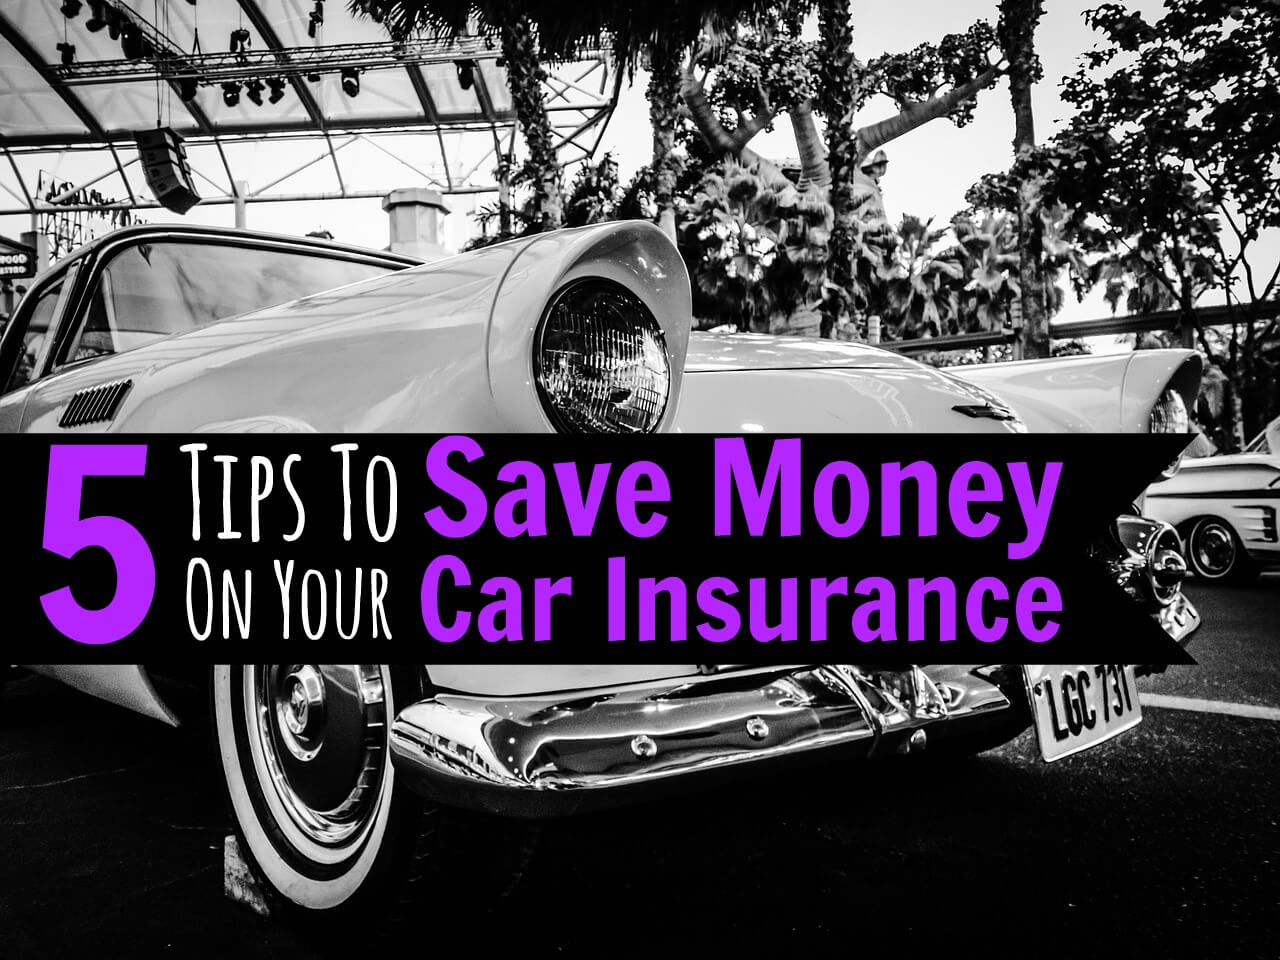 Get Car Insurance Quotes >> 5 Tips For Getting The Cheapest Car Insurance Quotes Possible